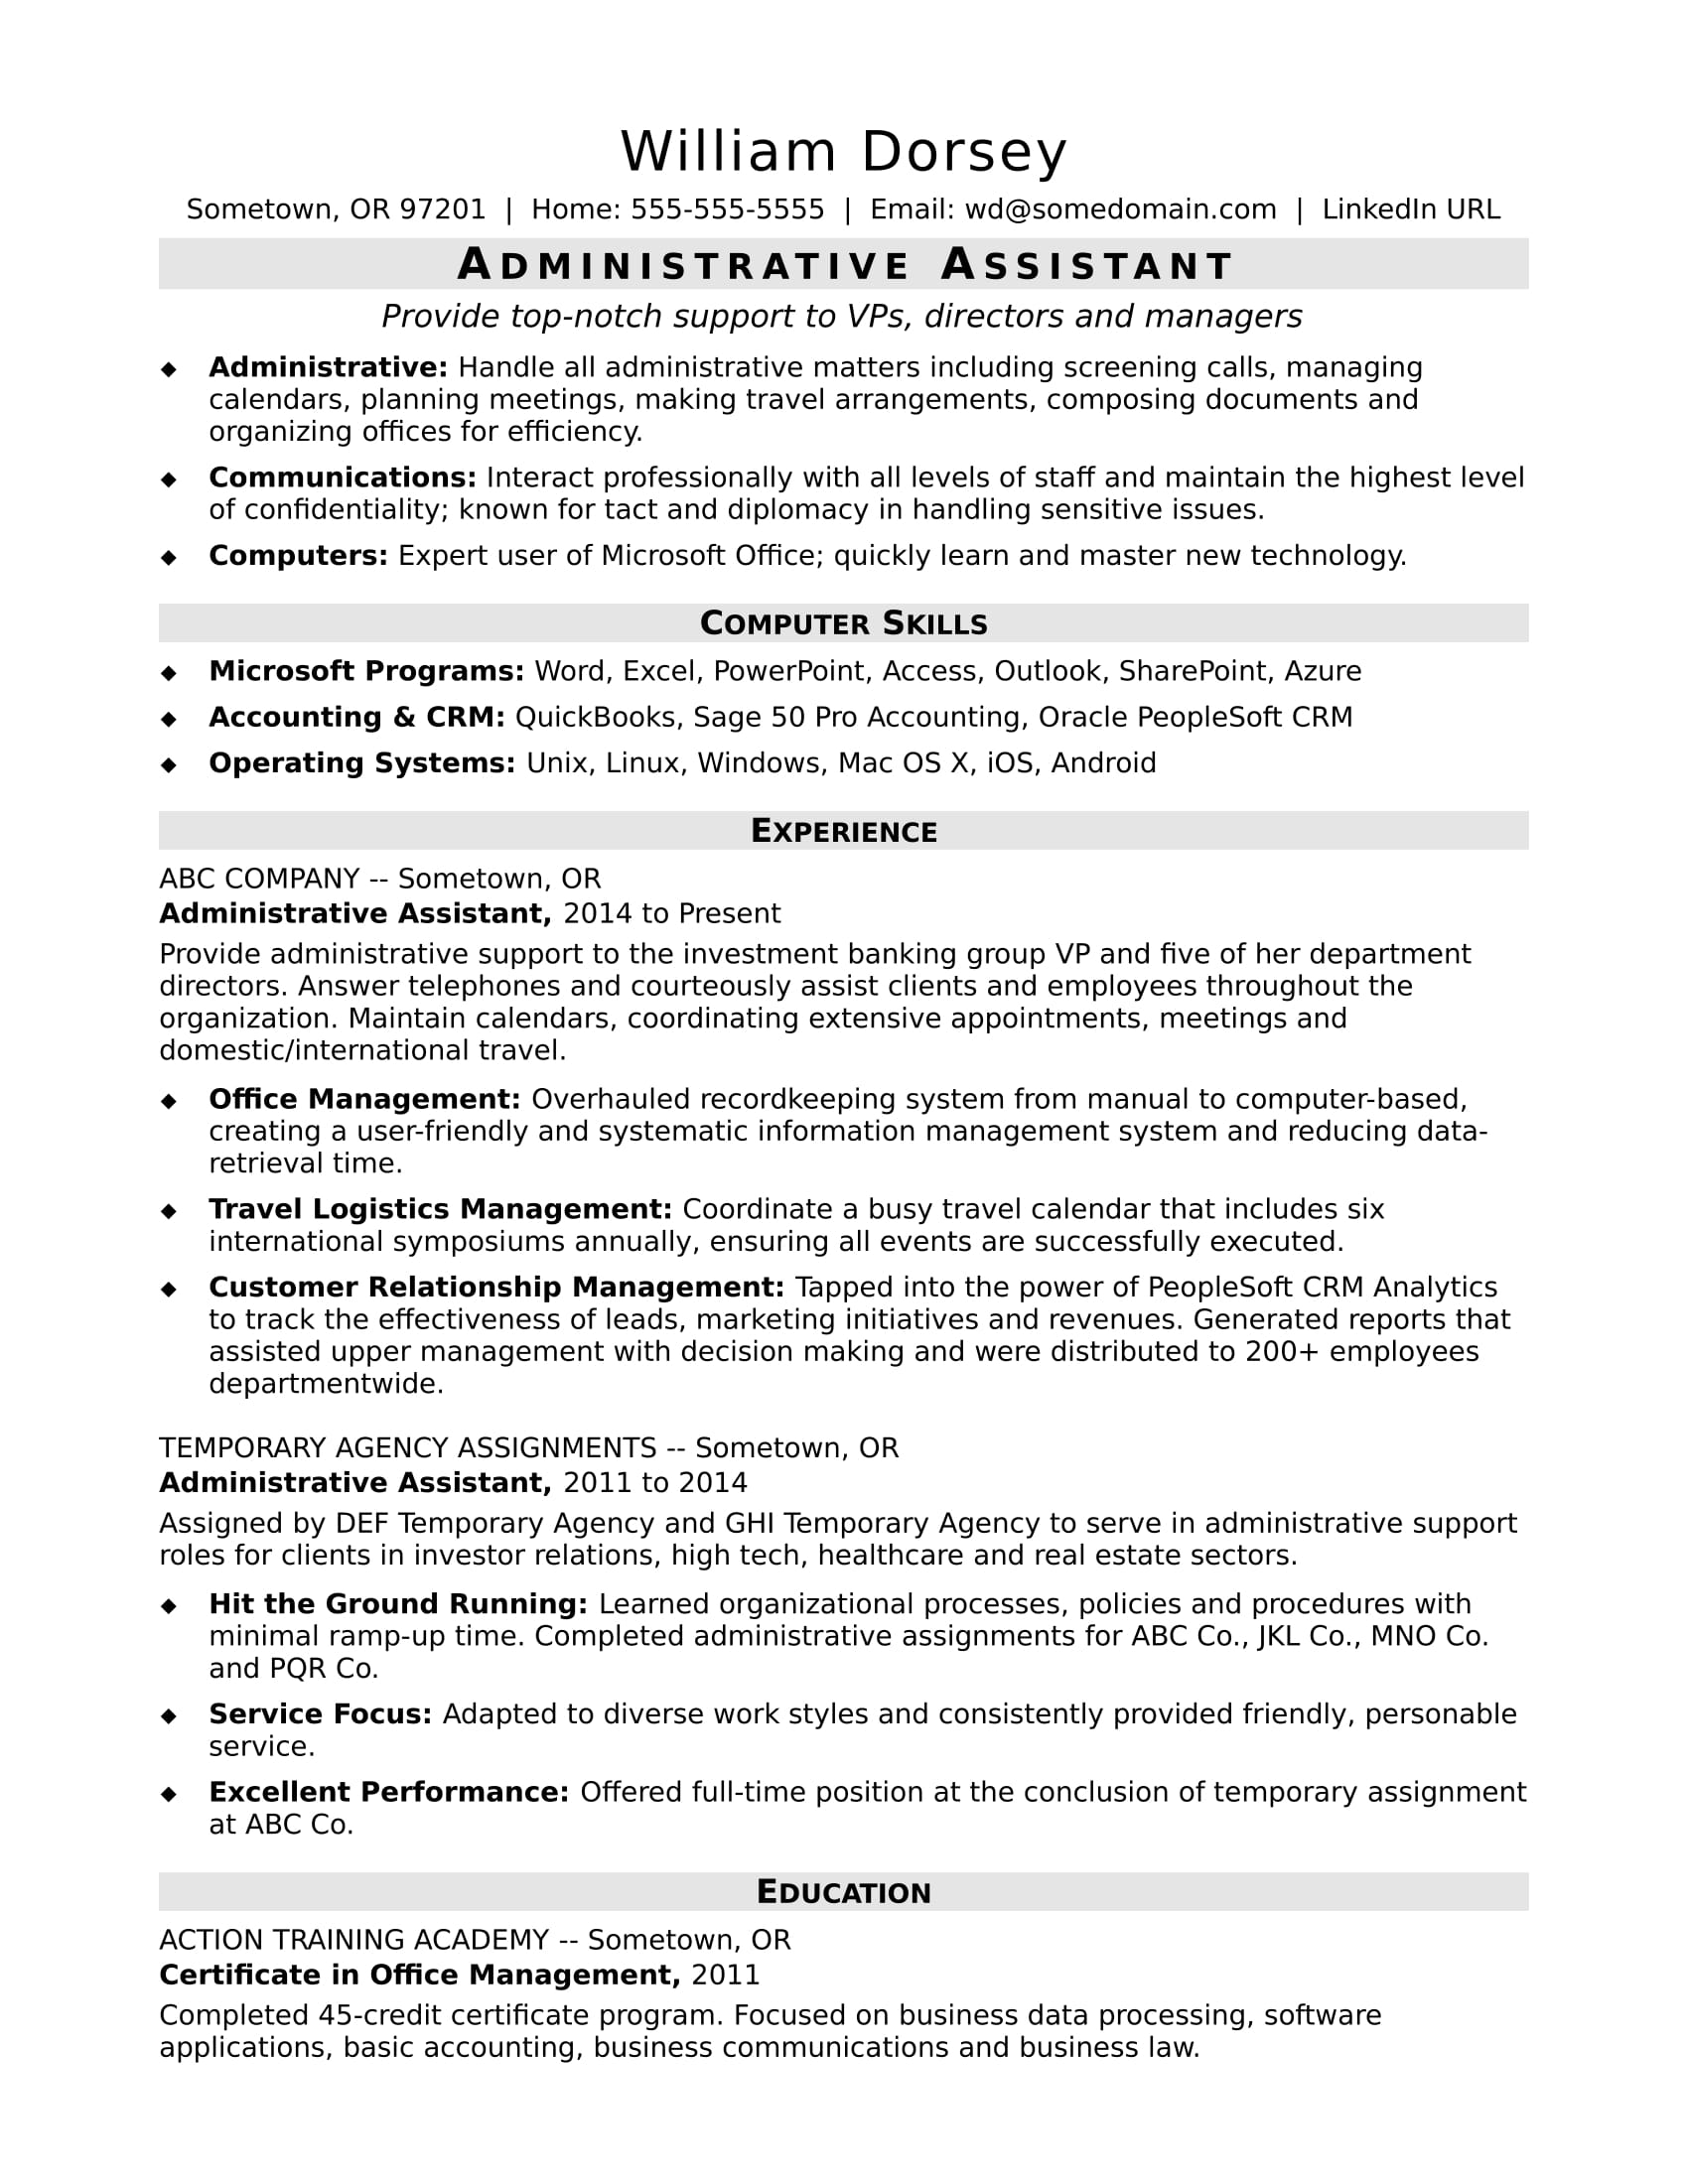 midlevel administrative assistant resume sample monster admin objective office manager Resume Admin Assistant Objective Resume Sample